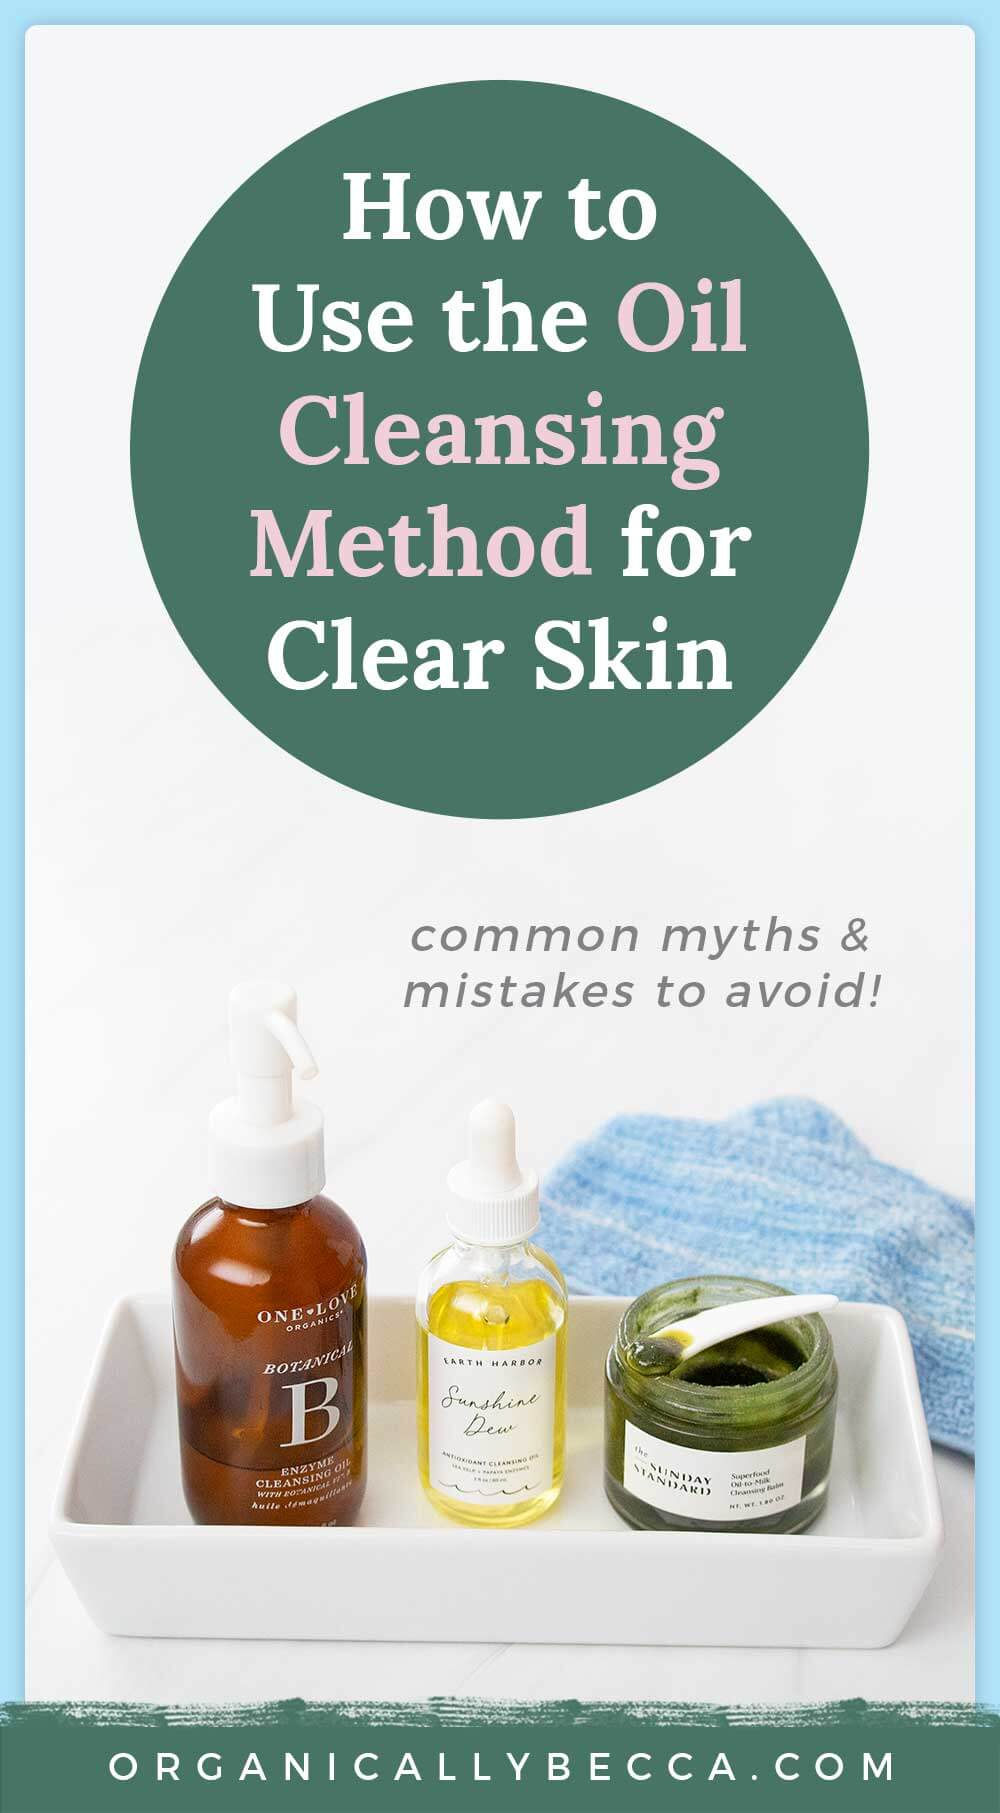 How to Get Started with the Oil Cleansing Method for Clear Skin